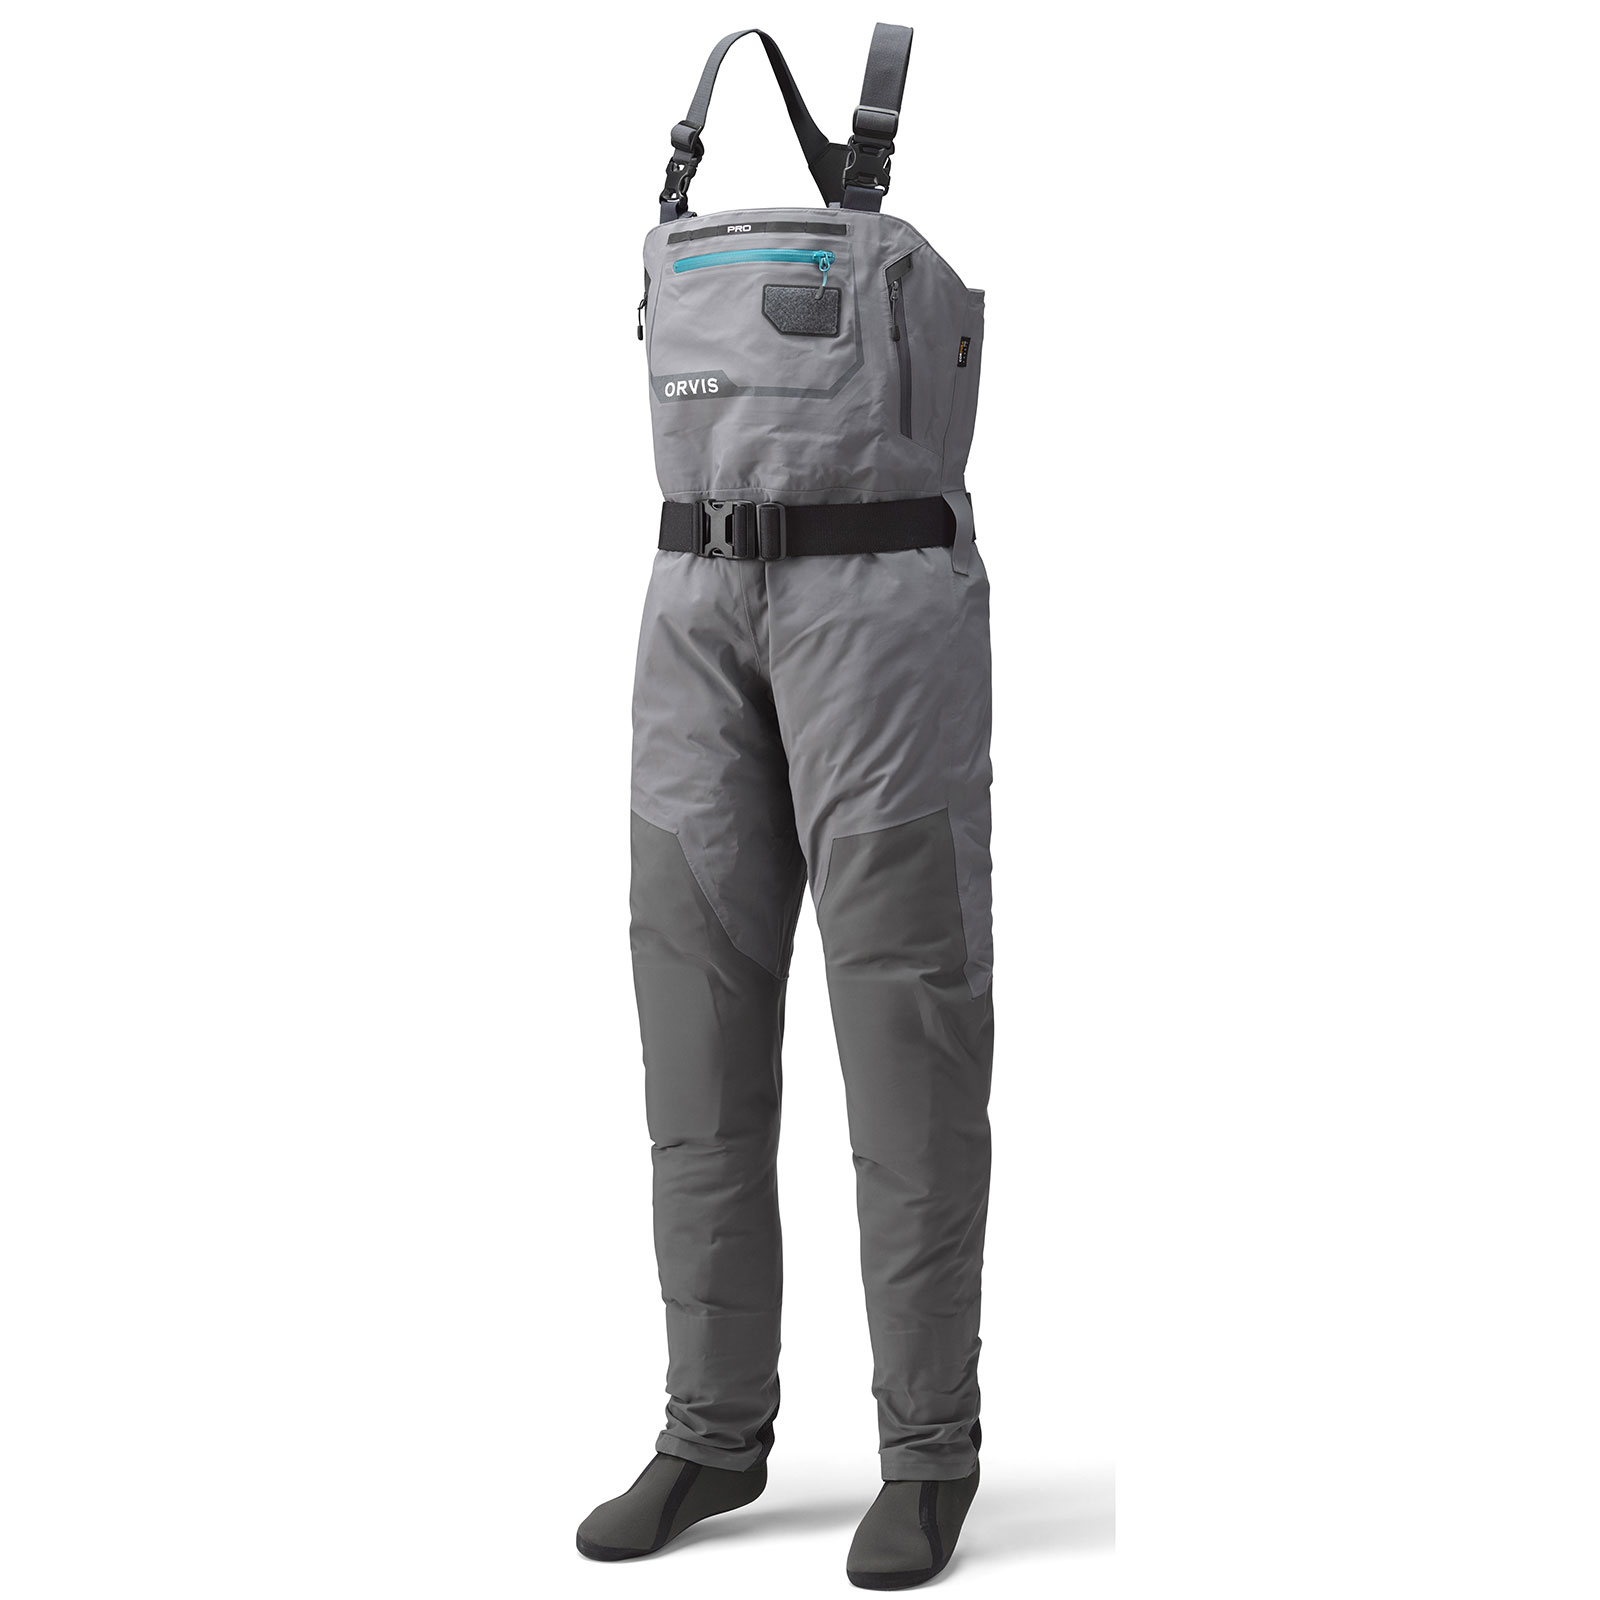 Orvis Women's PRO Stockingfoot Chest Waders